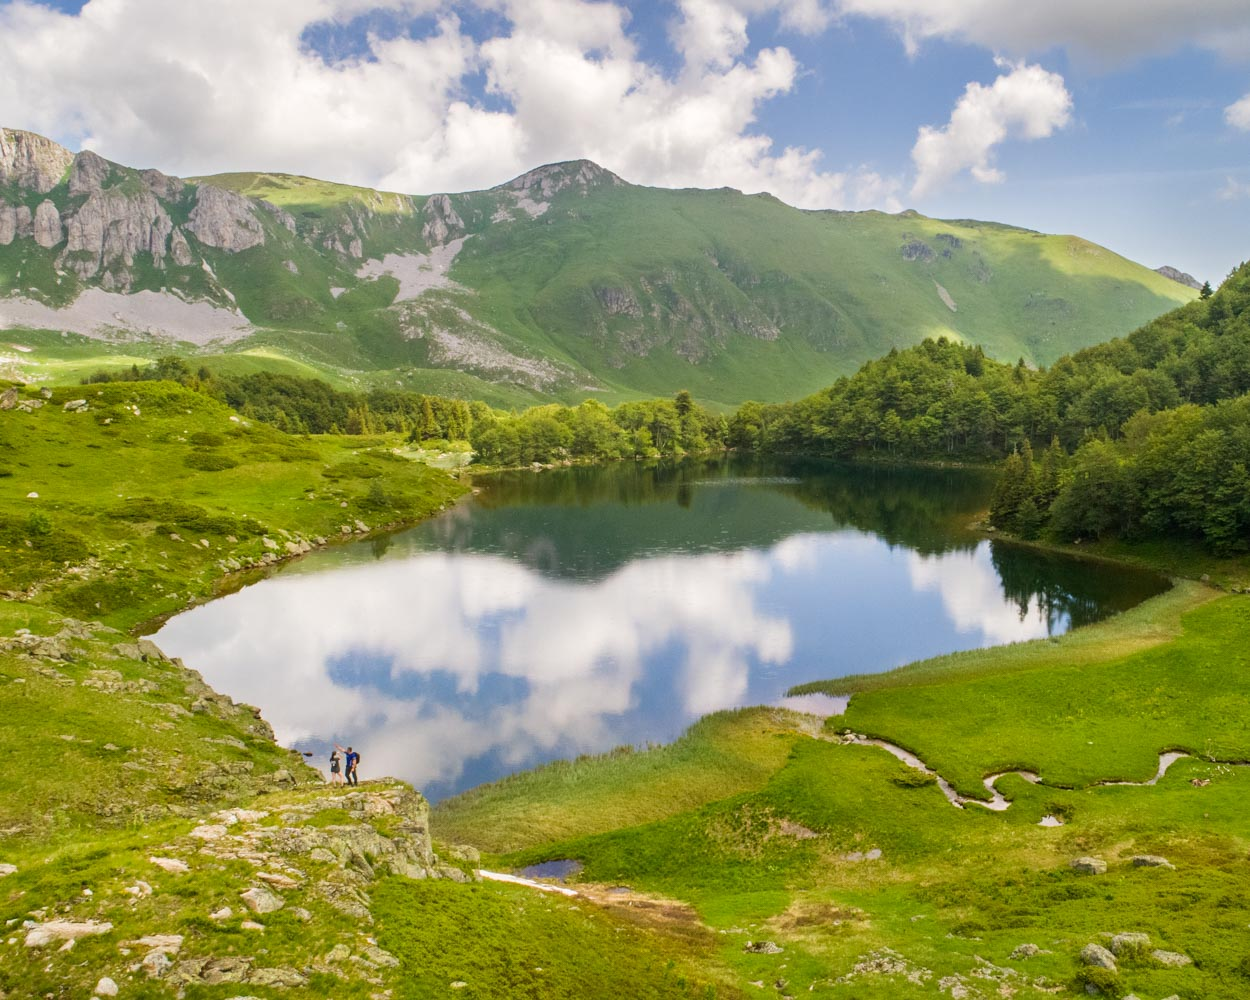 Pesic Lake near Pesic Katun in Biogradska Gora National Park